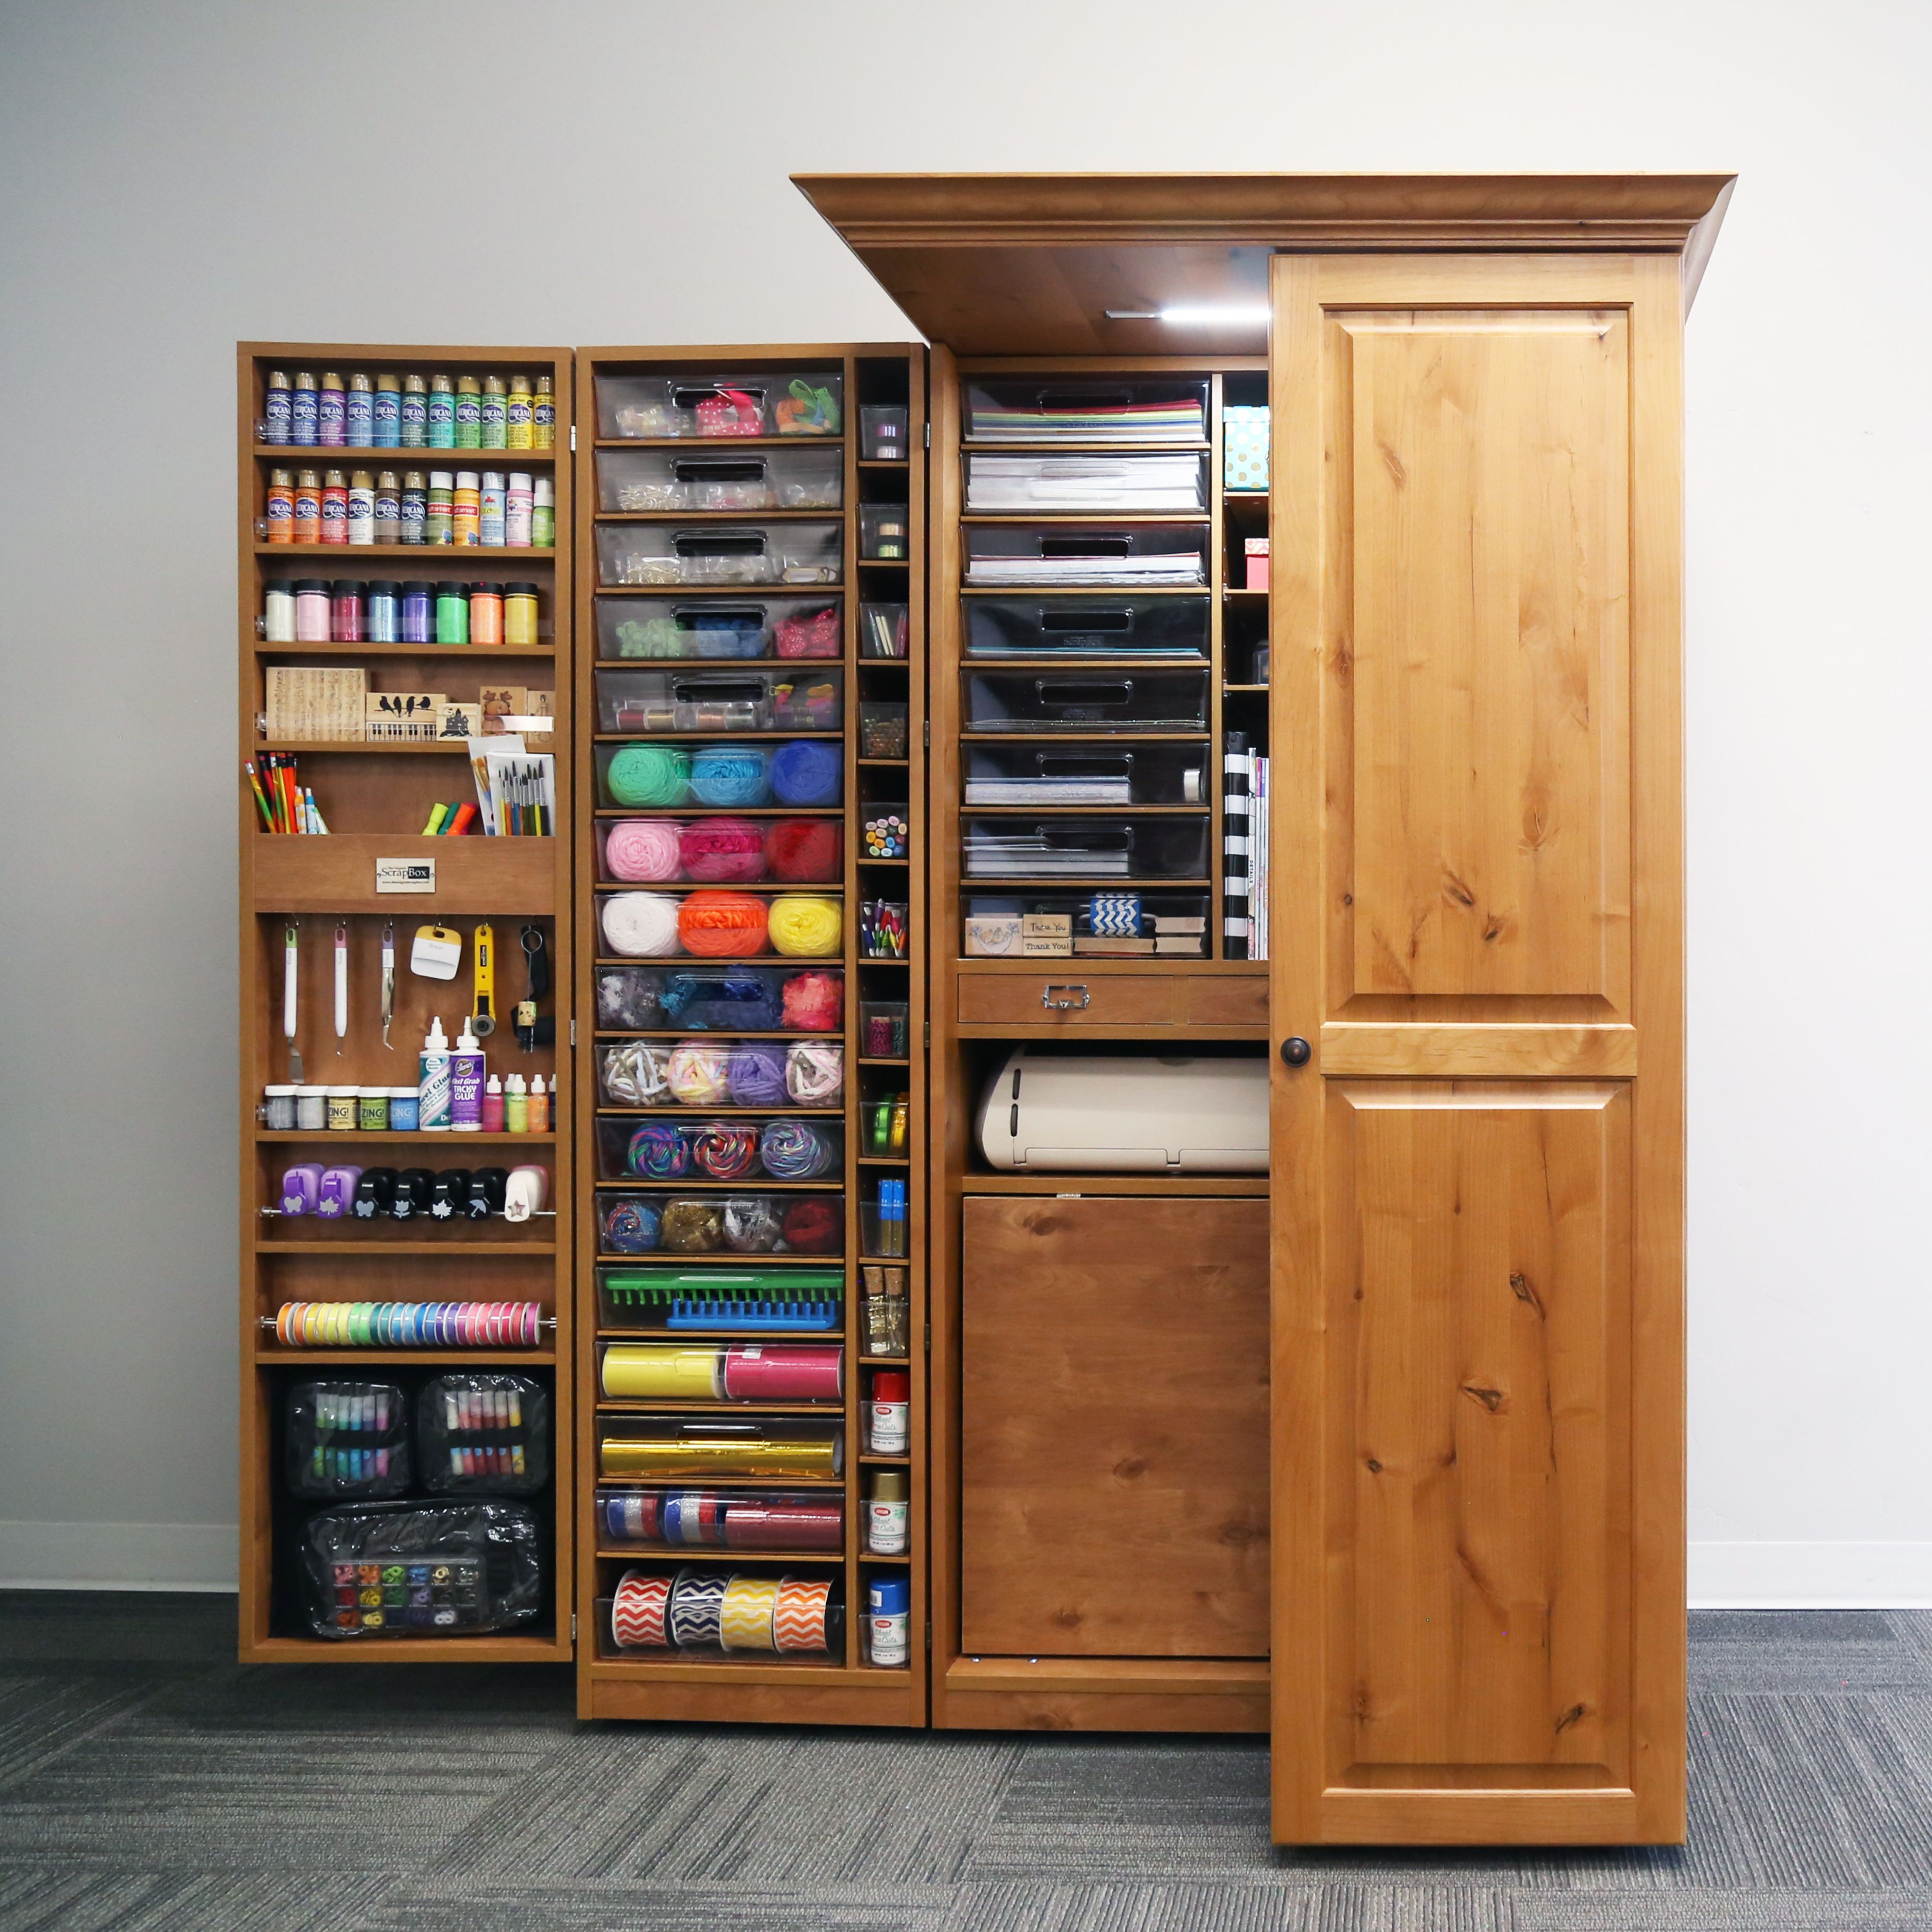 Best ideas about Craft Storage Cabinets . Save or Pin Looking for craft storage options Now.